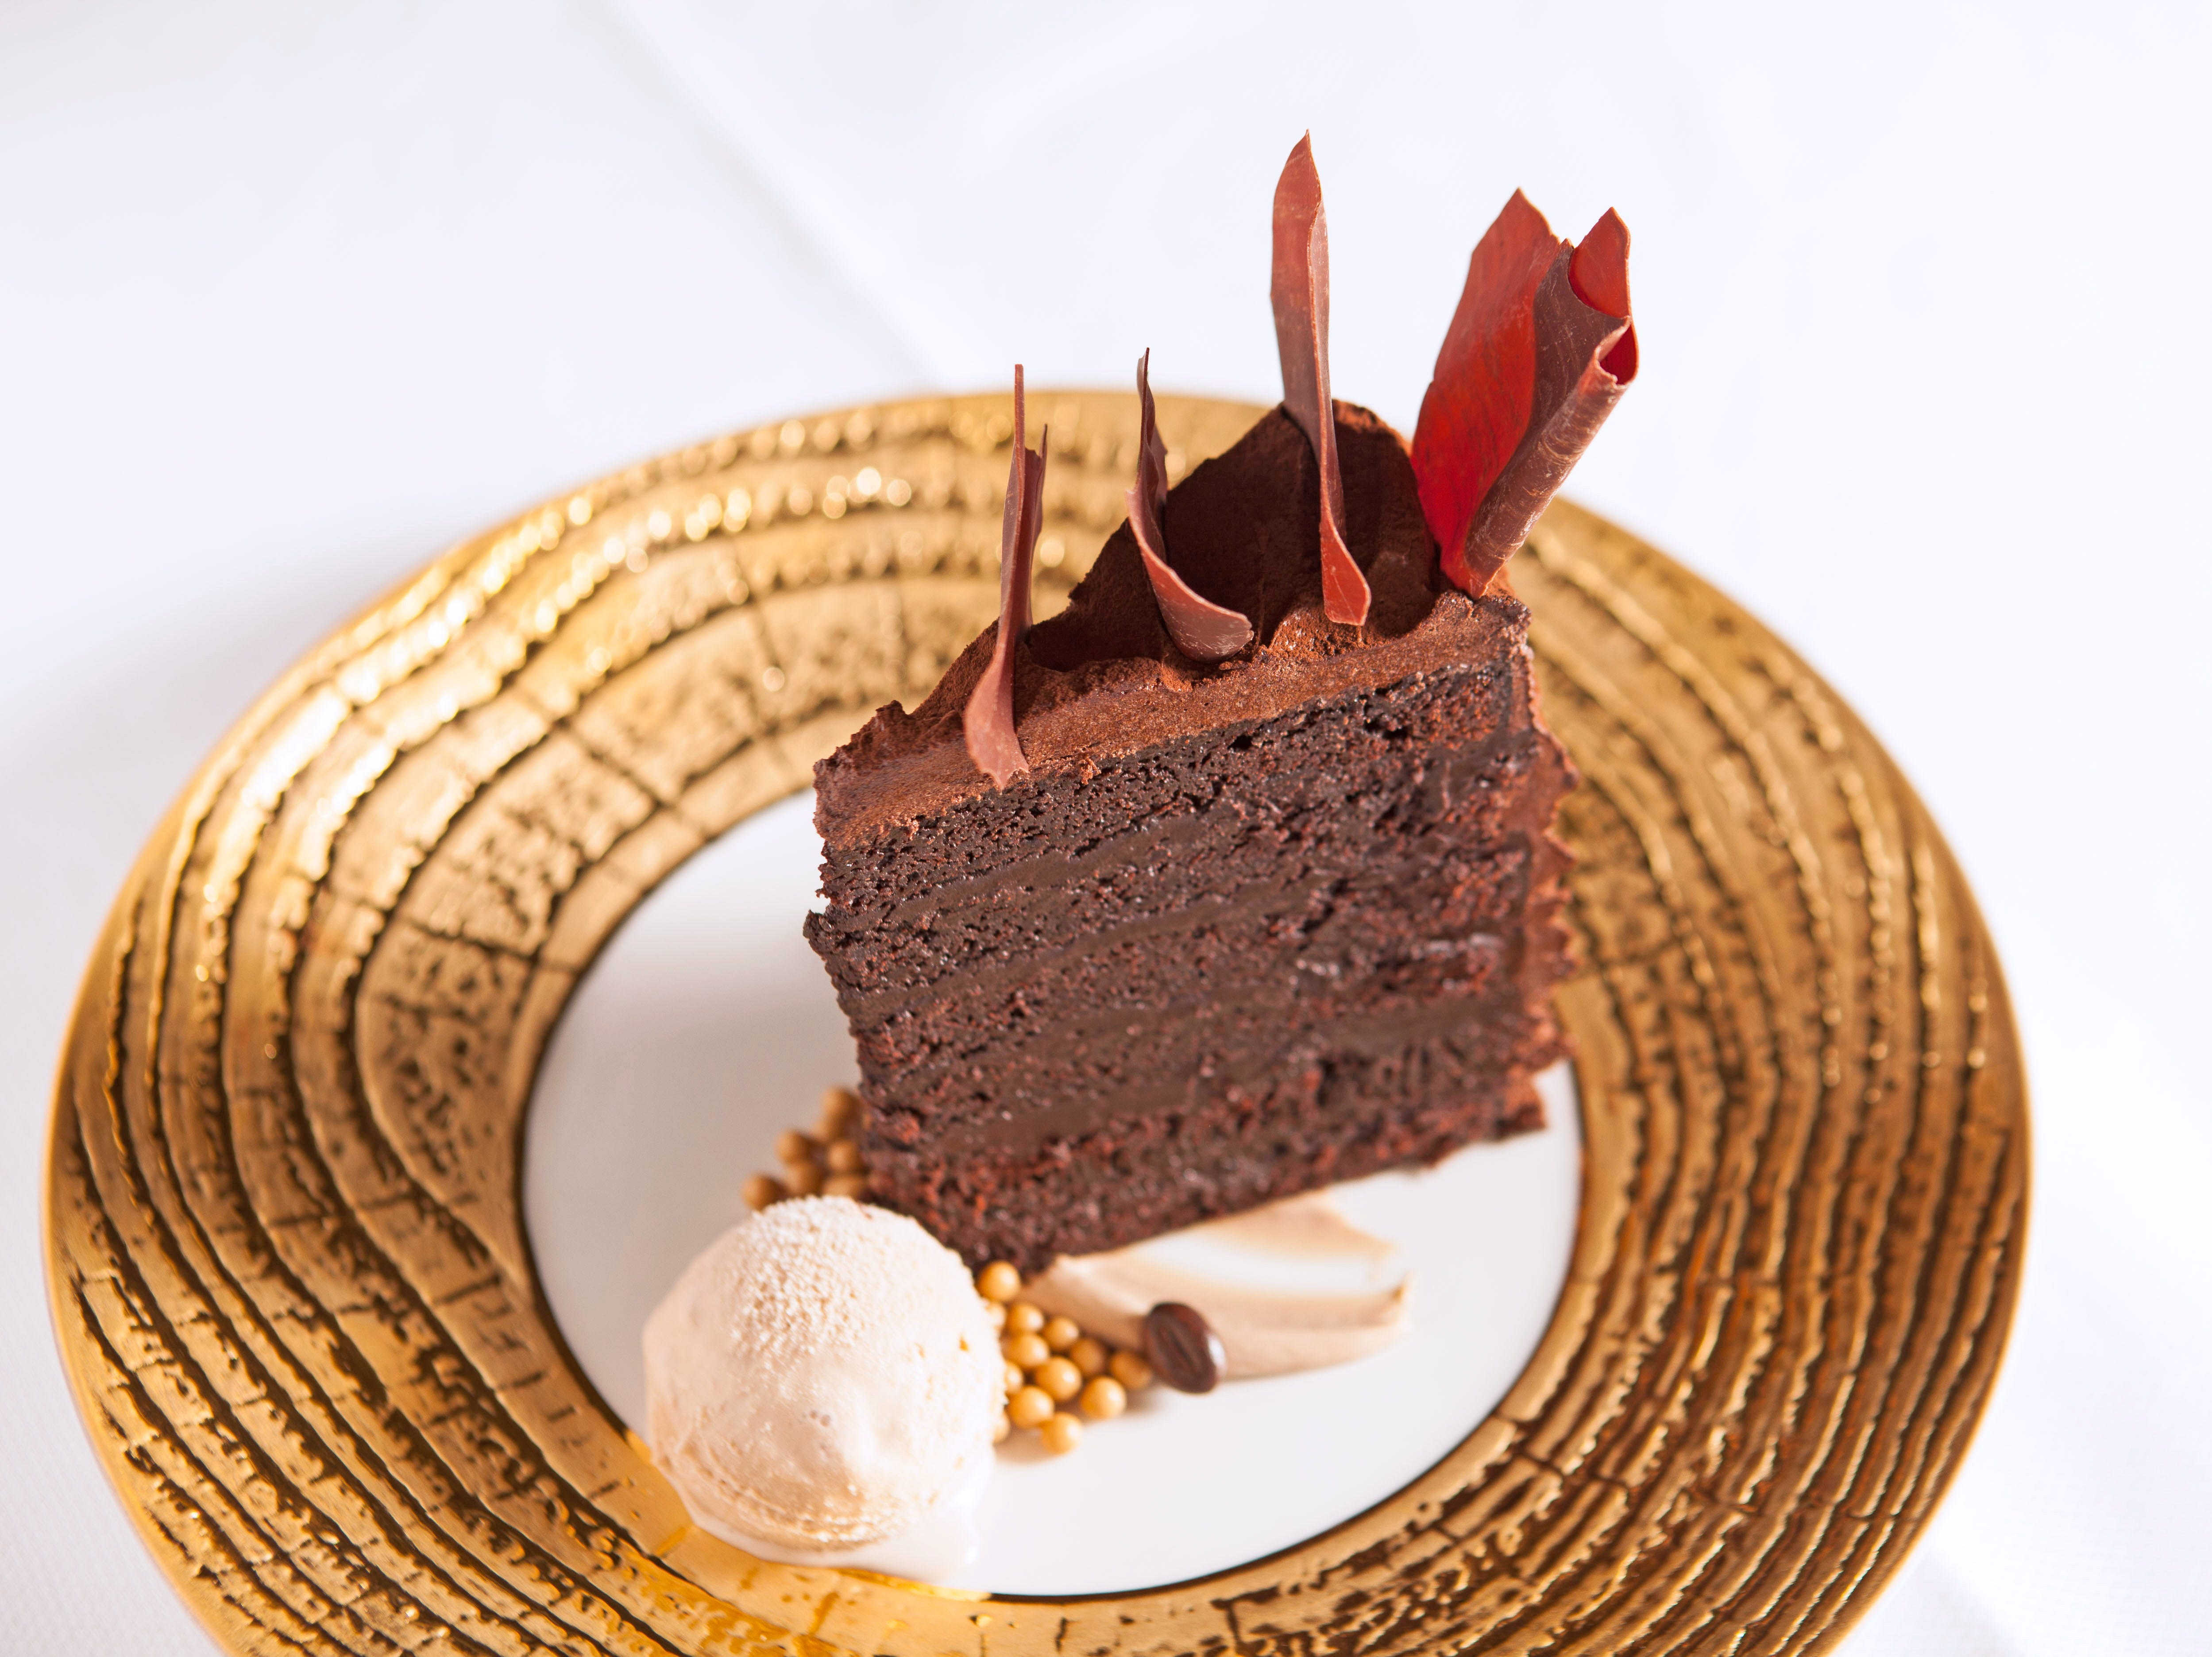 A 12-layer chocolate cake on the dessert menu at The Grill at Ritz-Carlton.